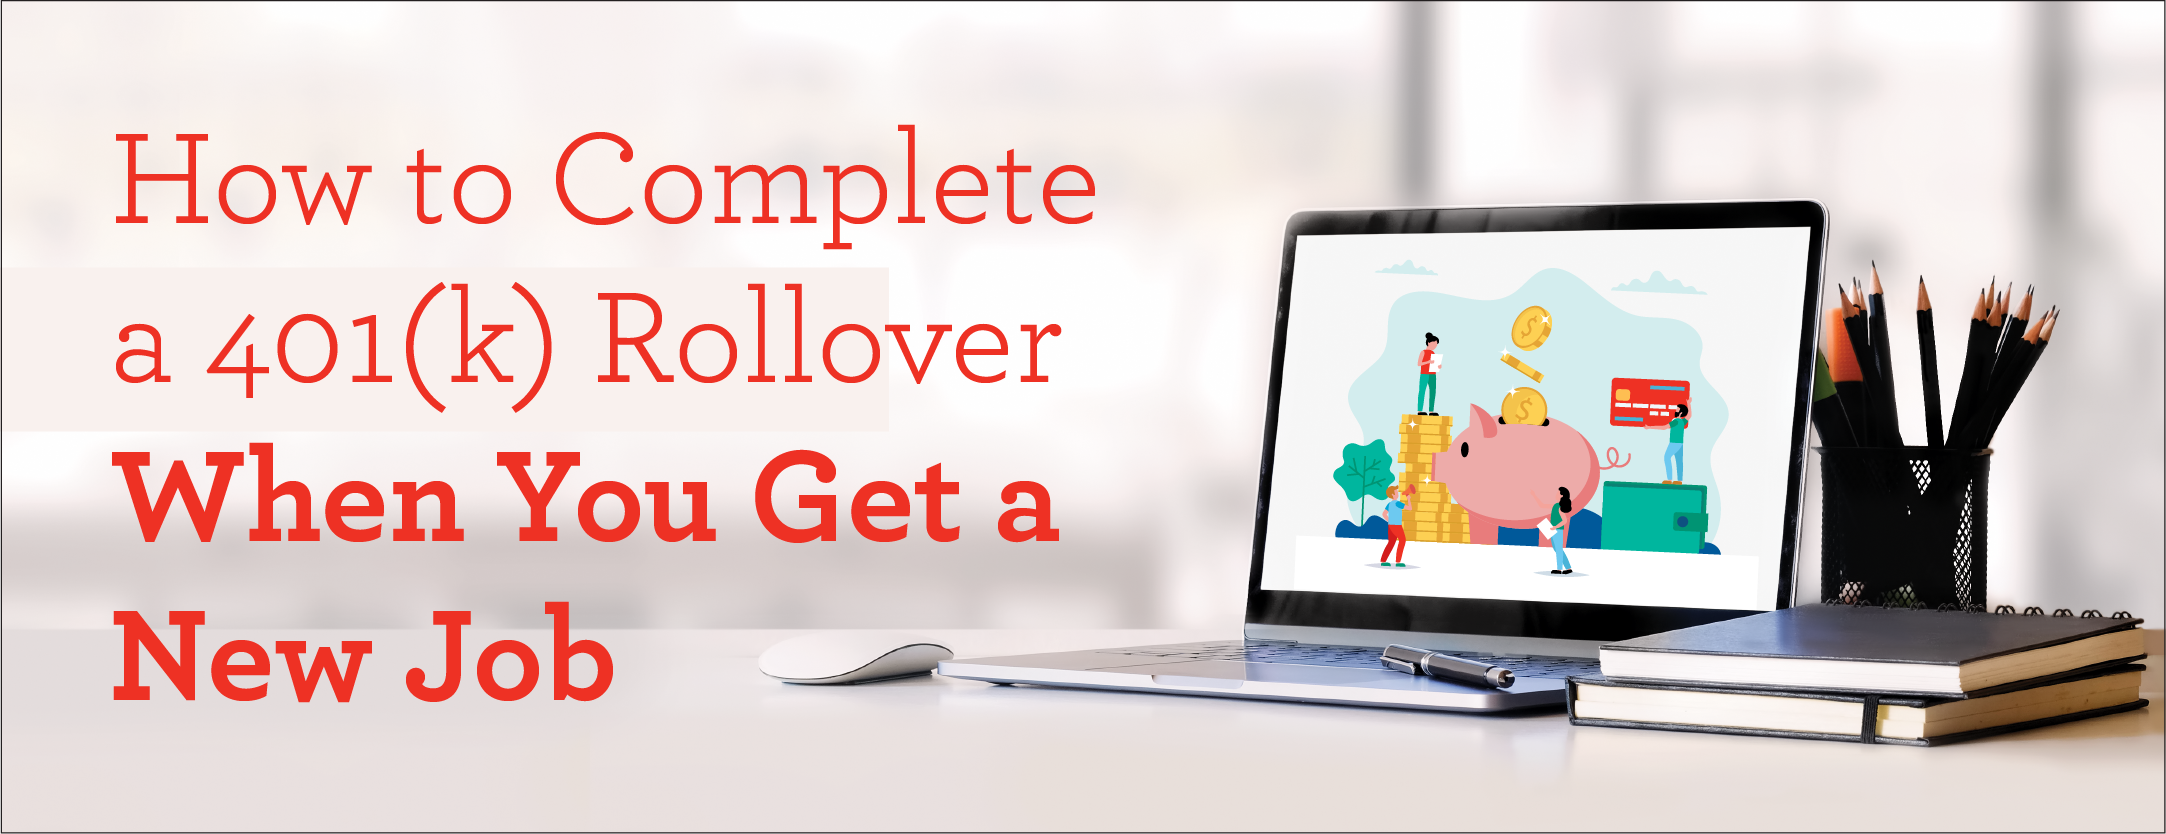 How to Complete a 401(k) Rollover When You Get a New Job header image